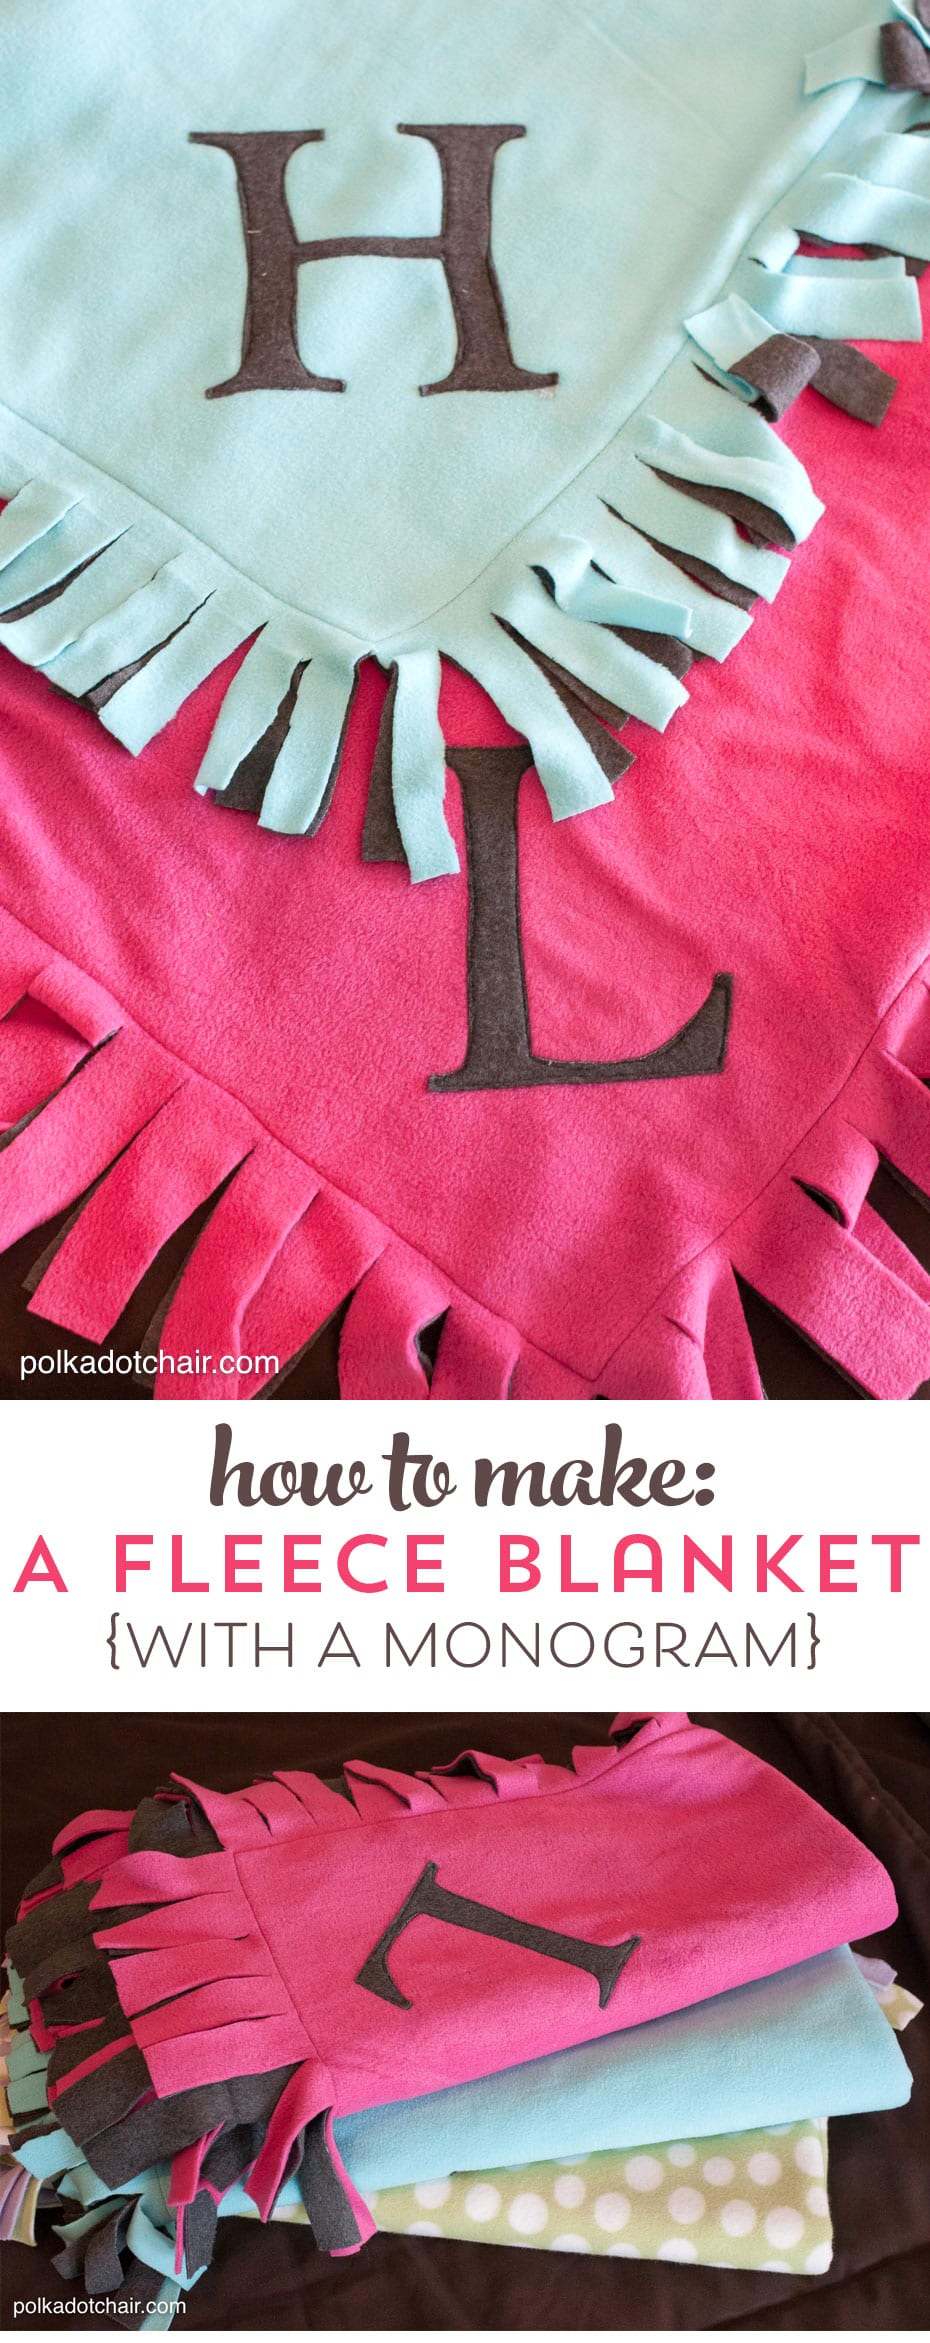 How to make a no tie polar fleece blanket with a monogram, makes a fun gift.